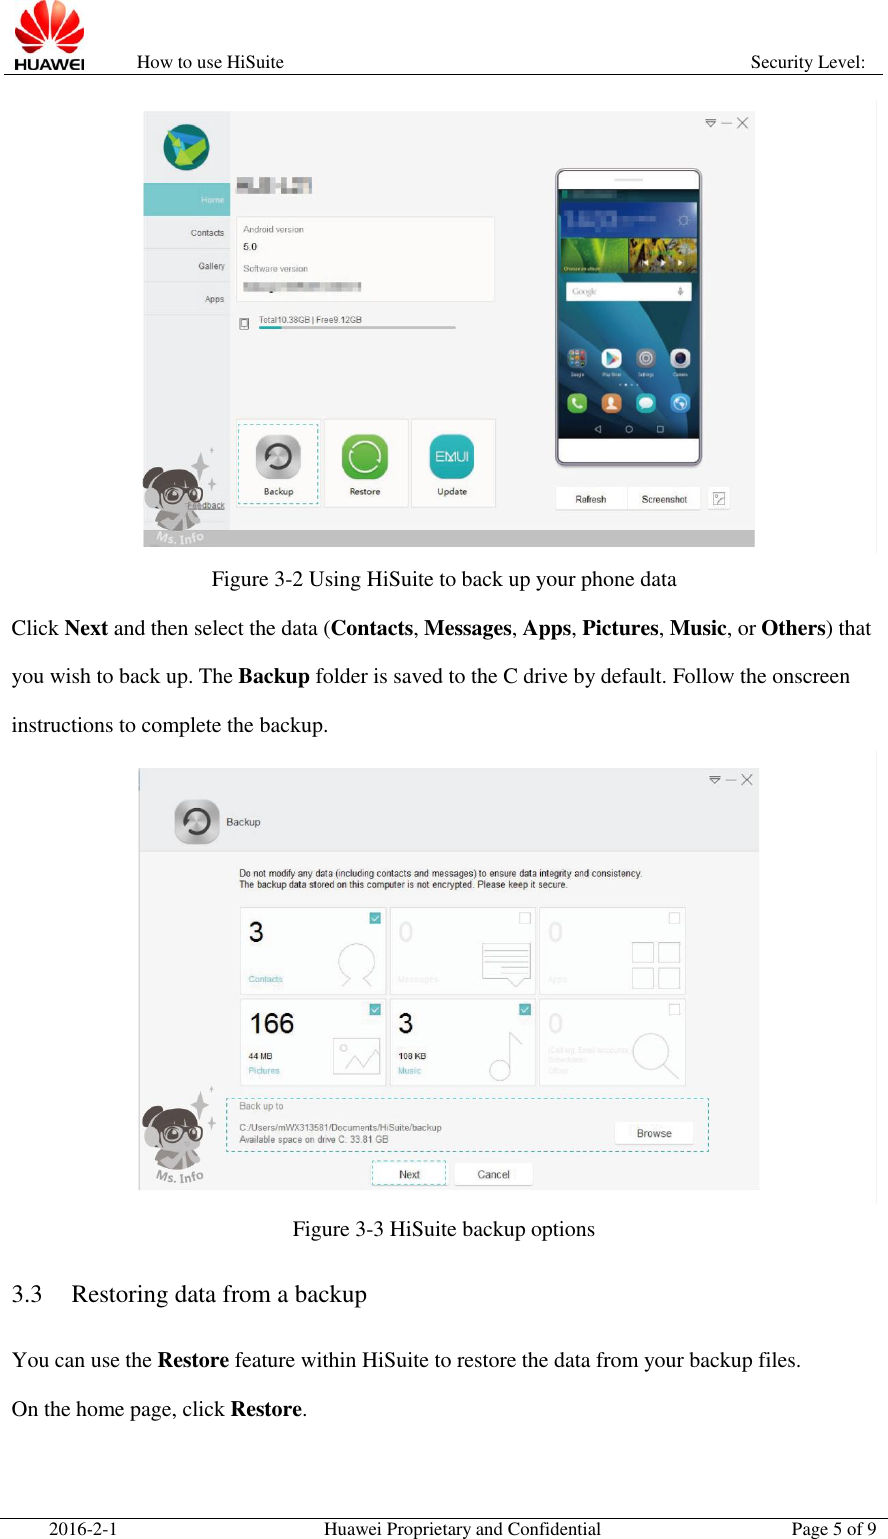 Huawei How To Use Hi Suite